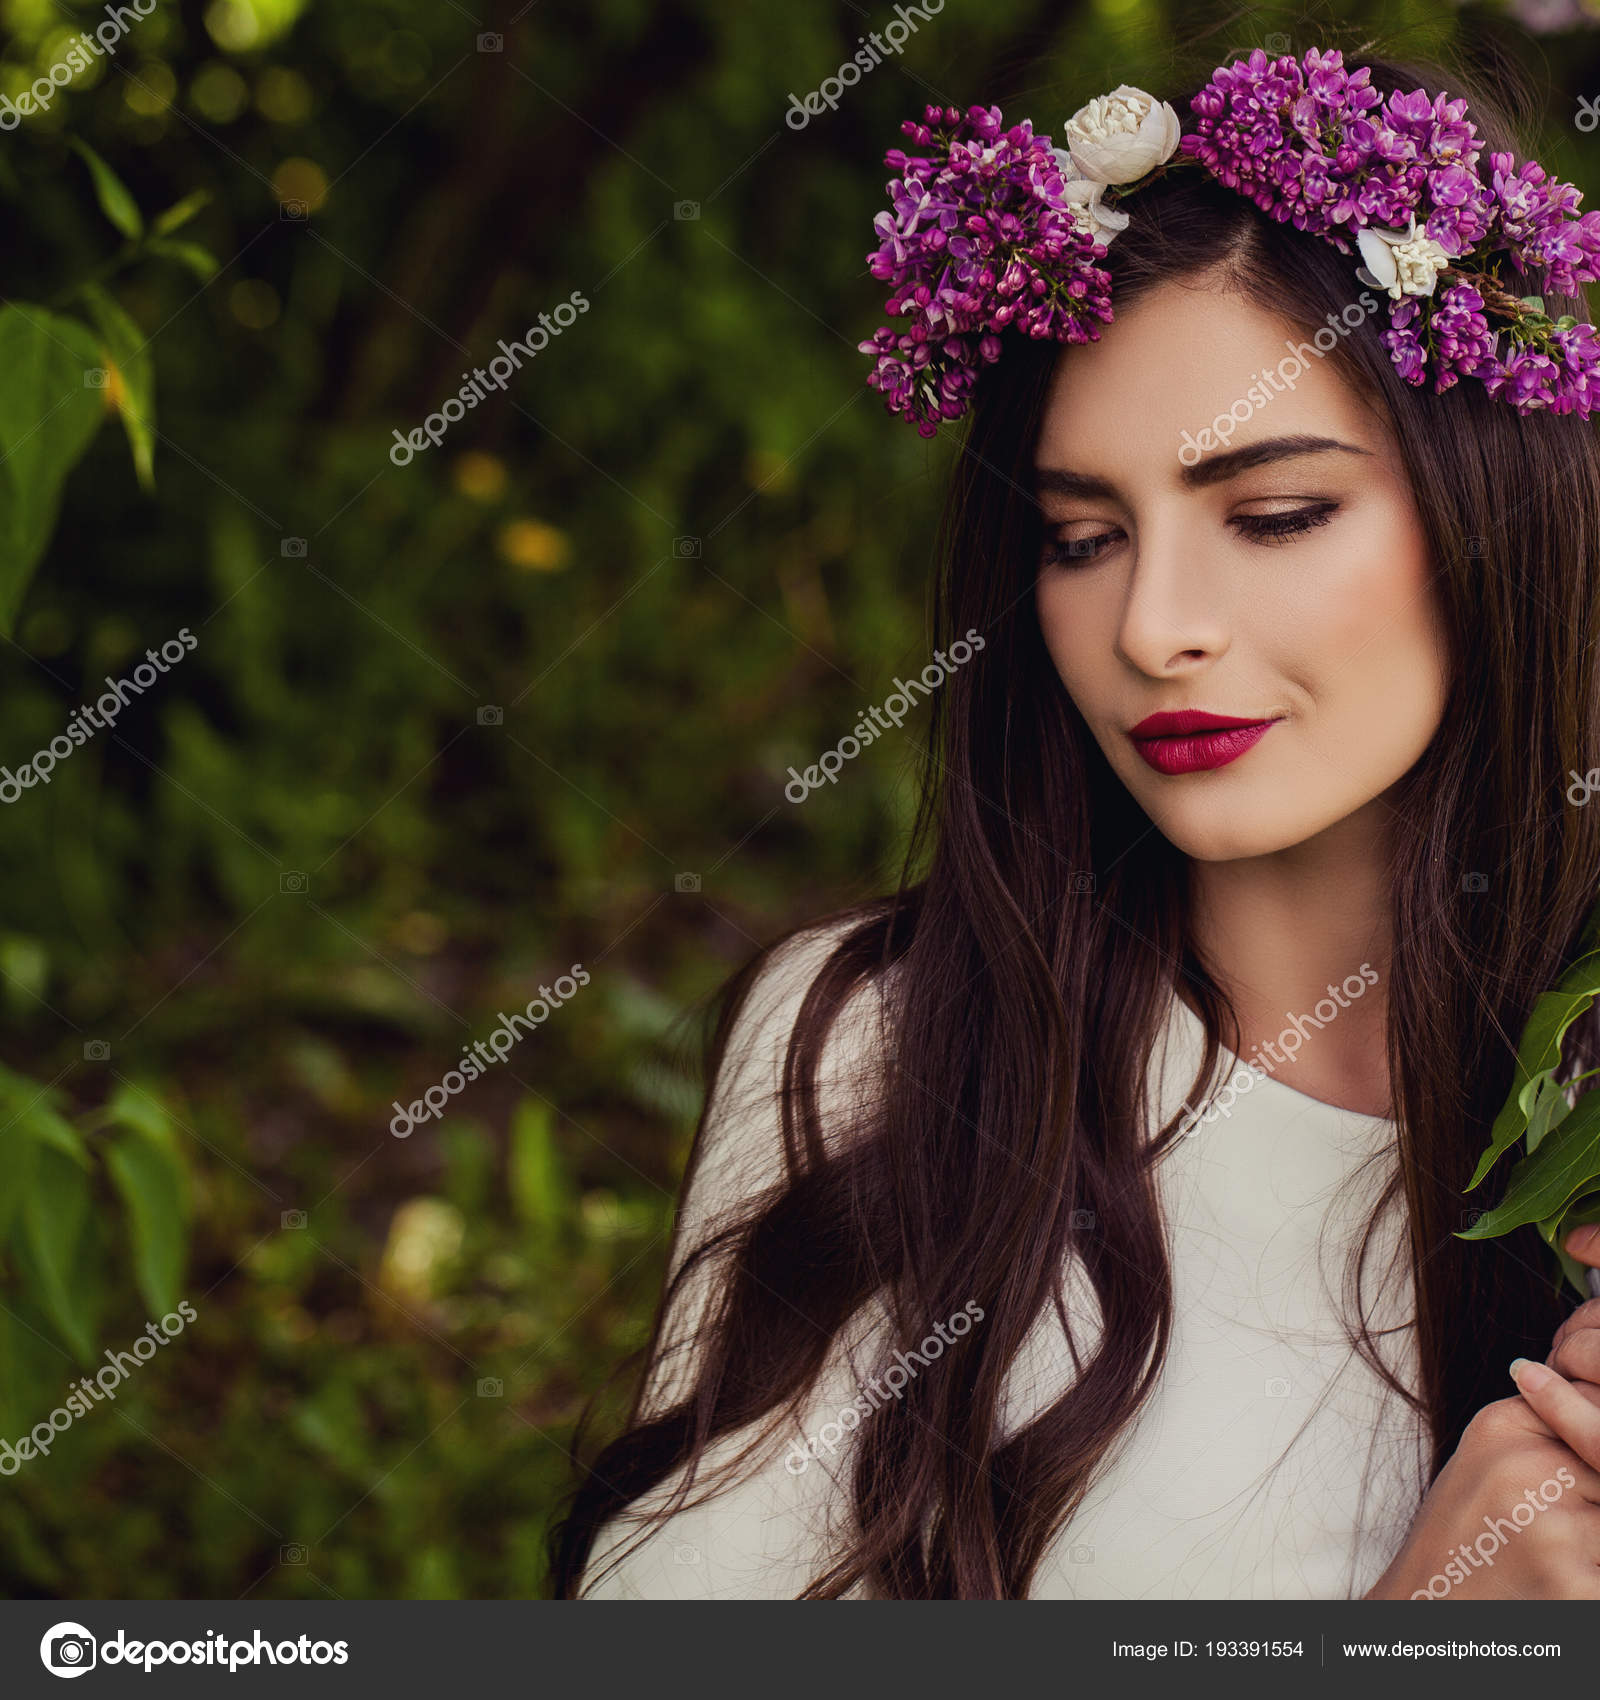 Beautiful woman with flowers wreath outdoor summer portrait stock beautiful woman with flowers wreath outdoor summer portrait on natural soft focus background with copy space photo by millafedotova izmirmasajfo